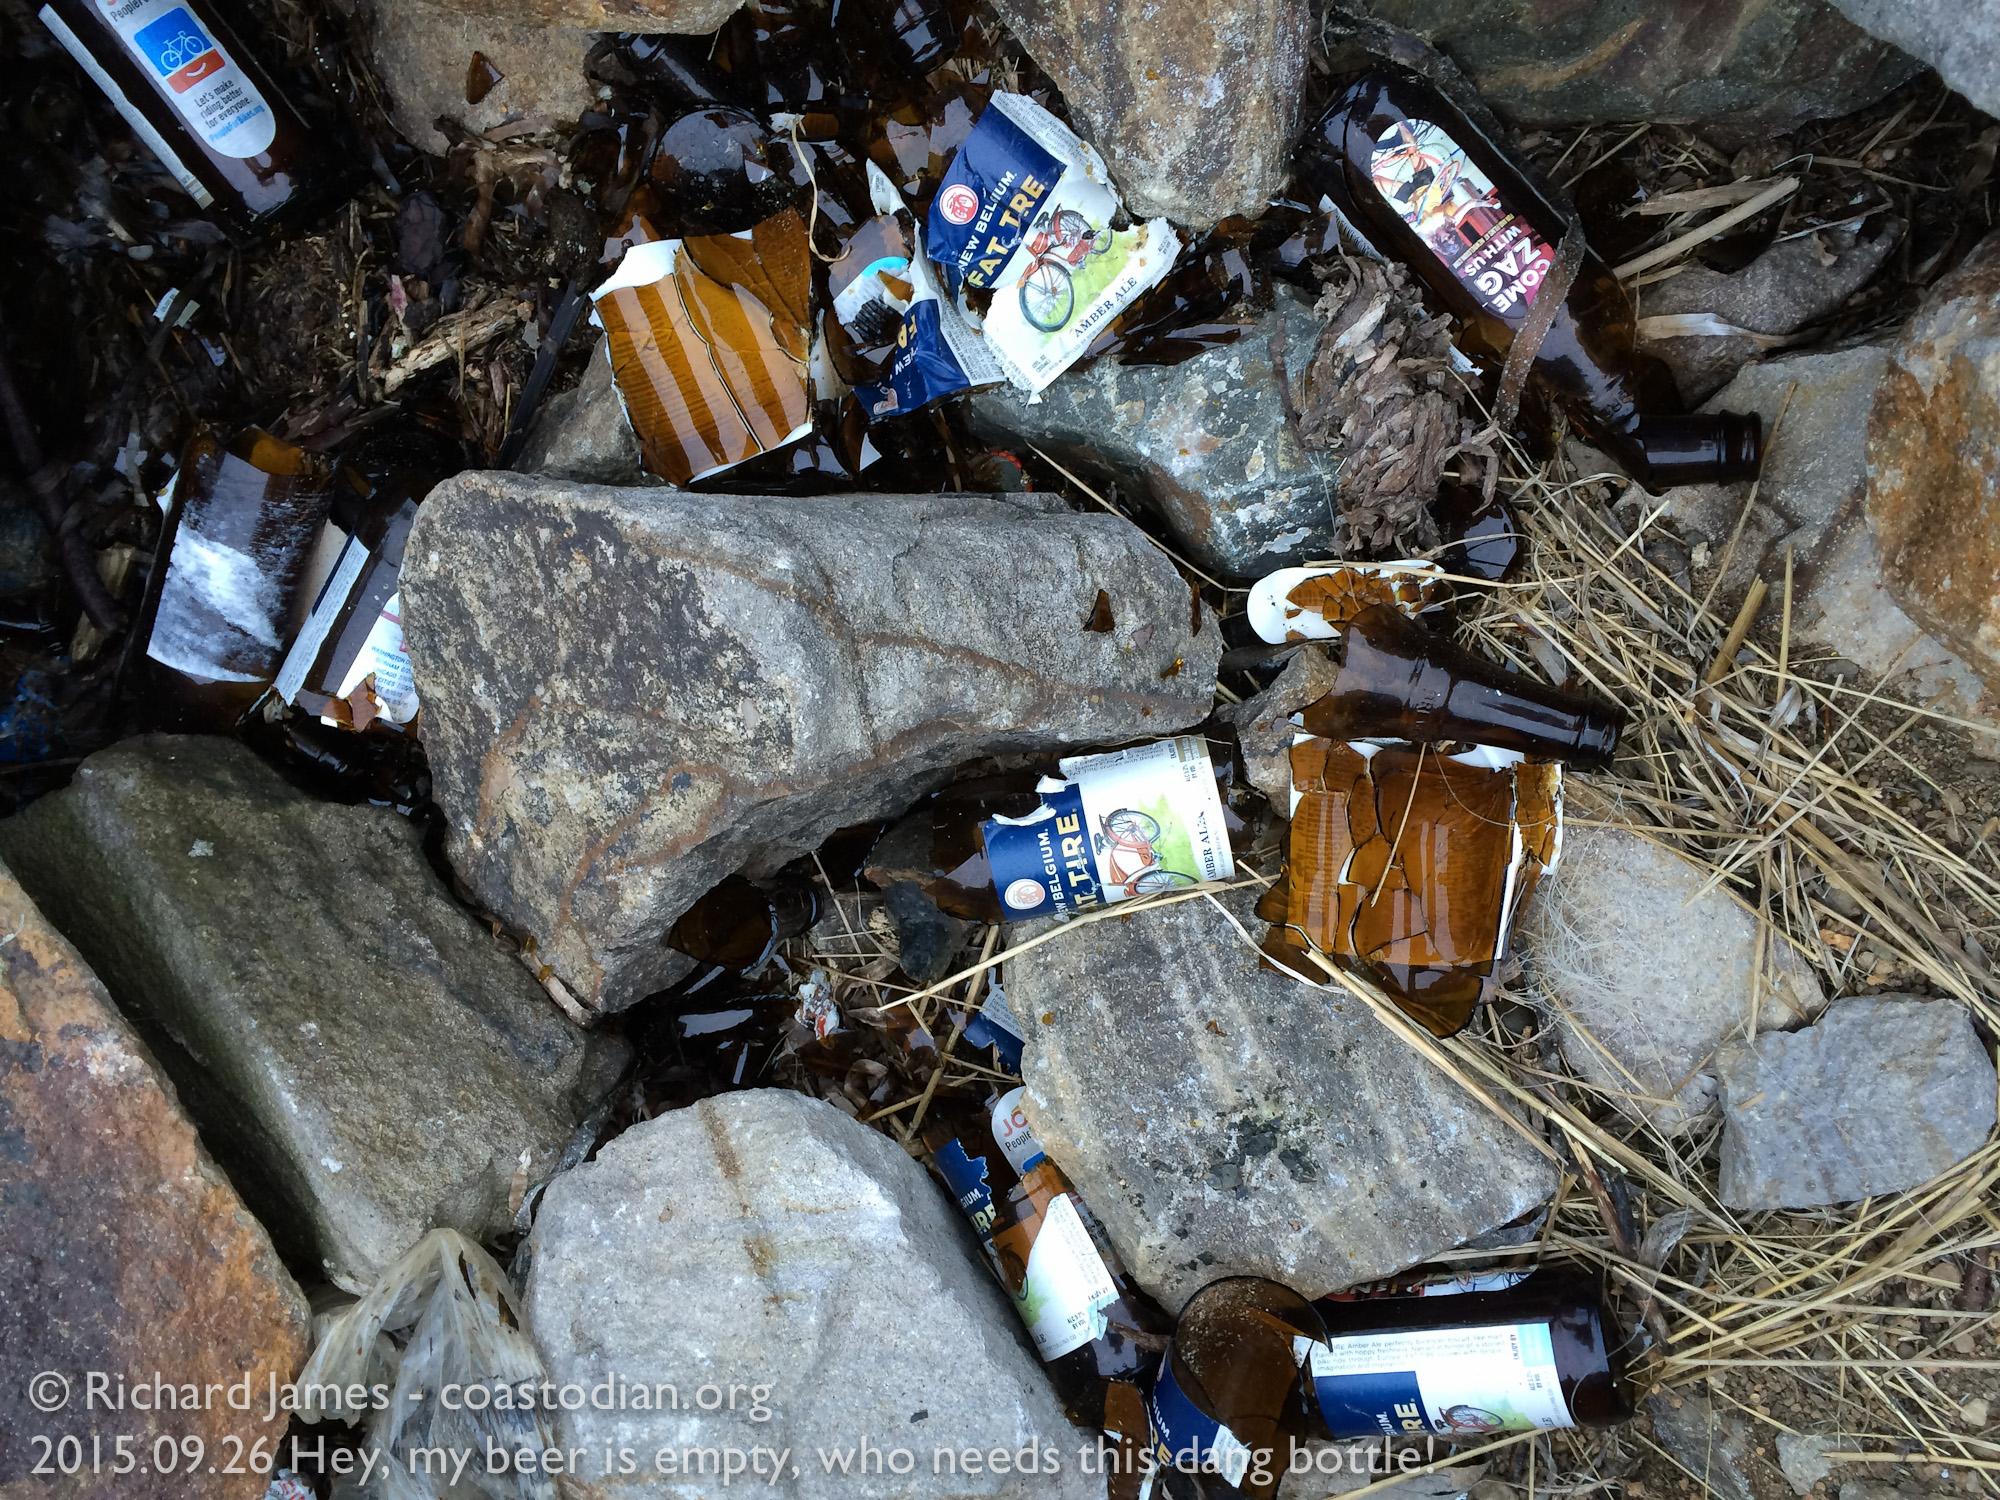 ©Richard james - coastodian.org bottle empty, why recycle it when you can smash it on the shore of this gorgeous bay.